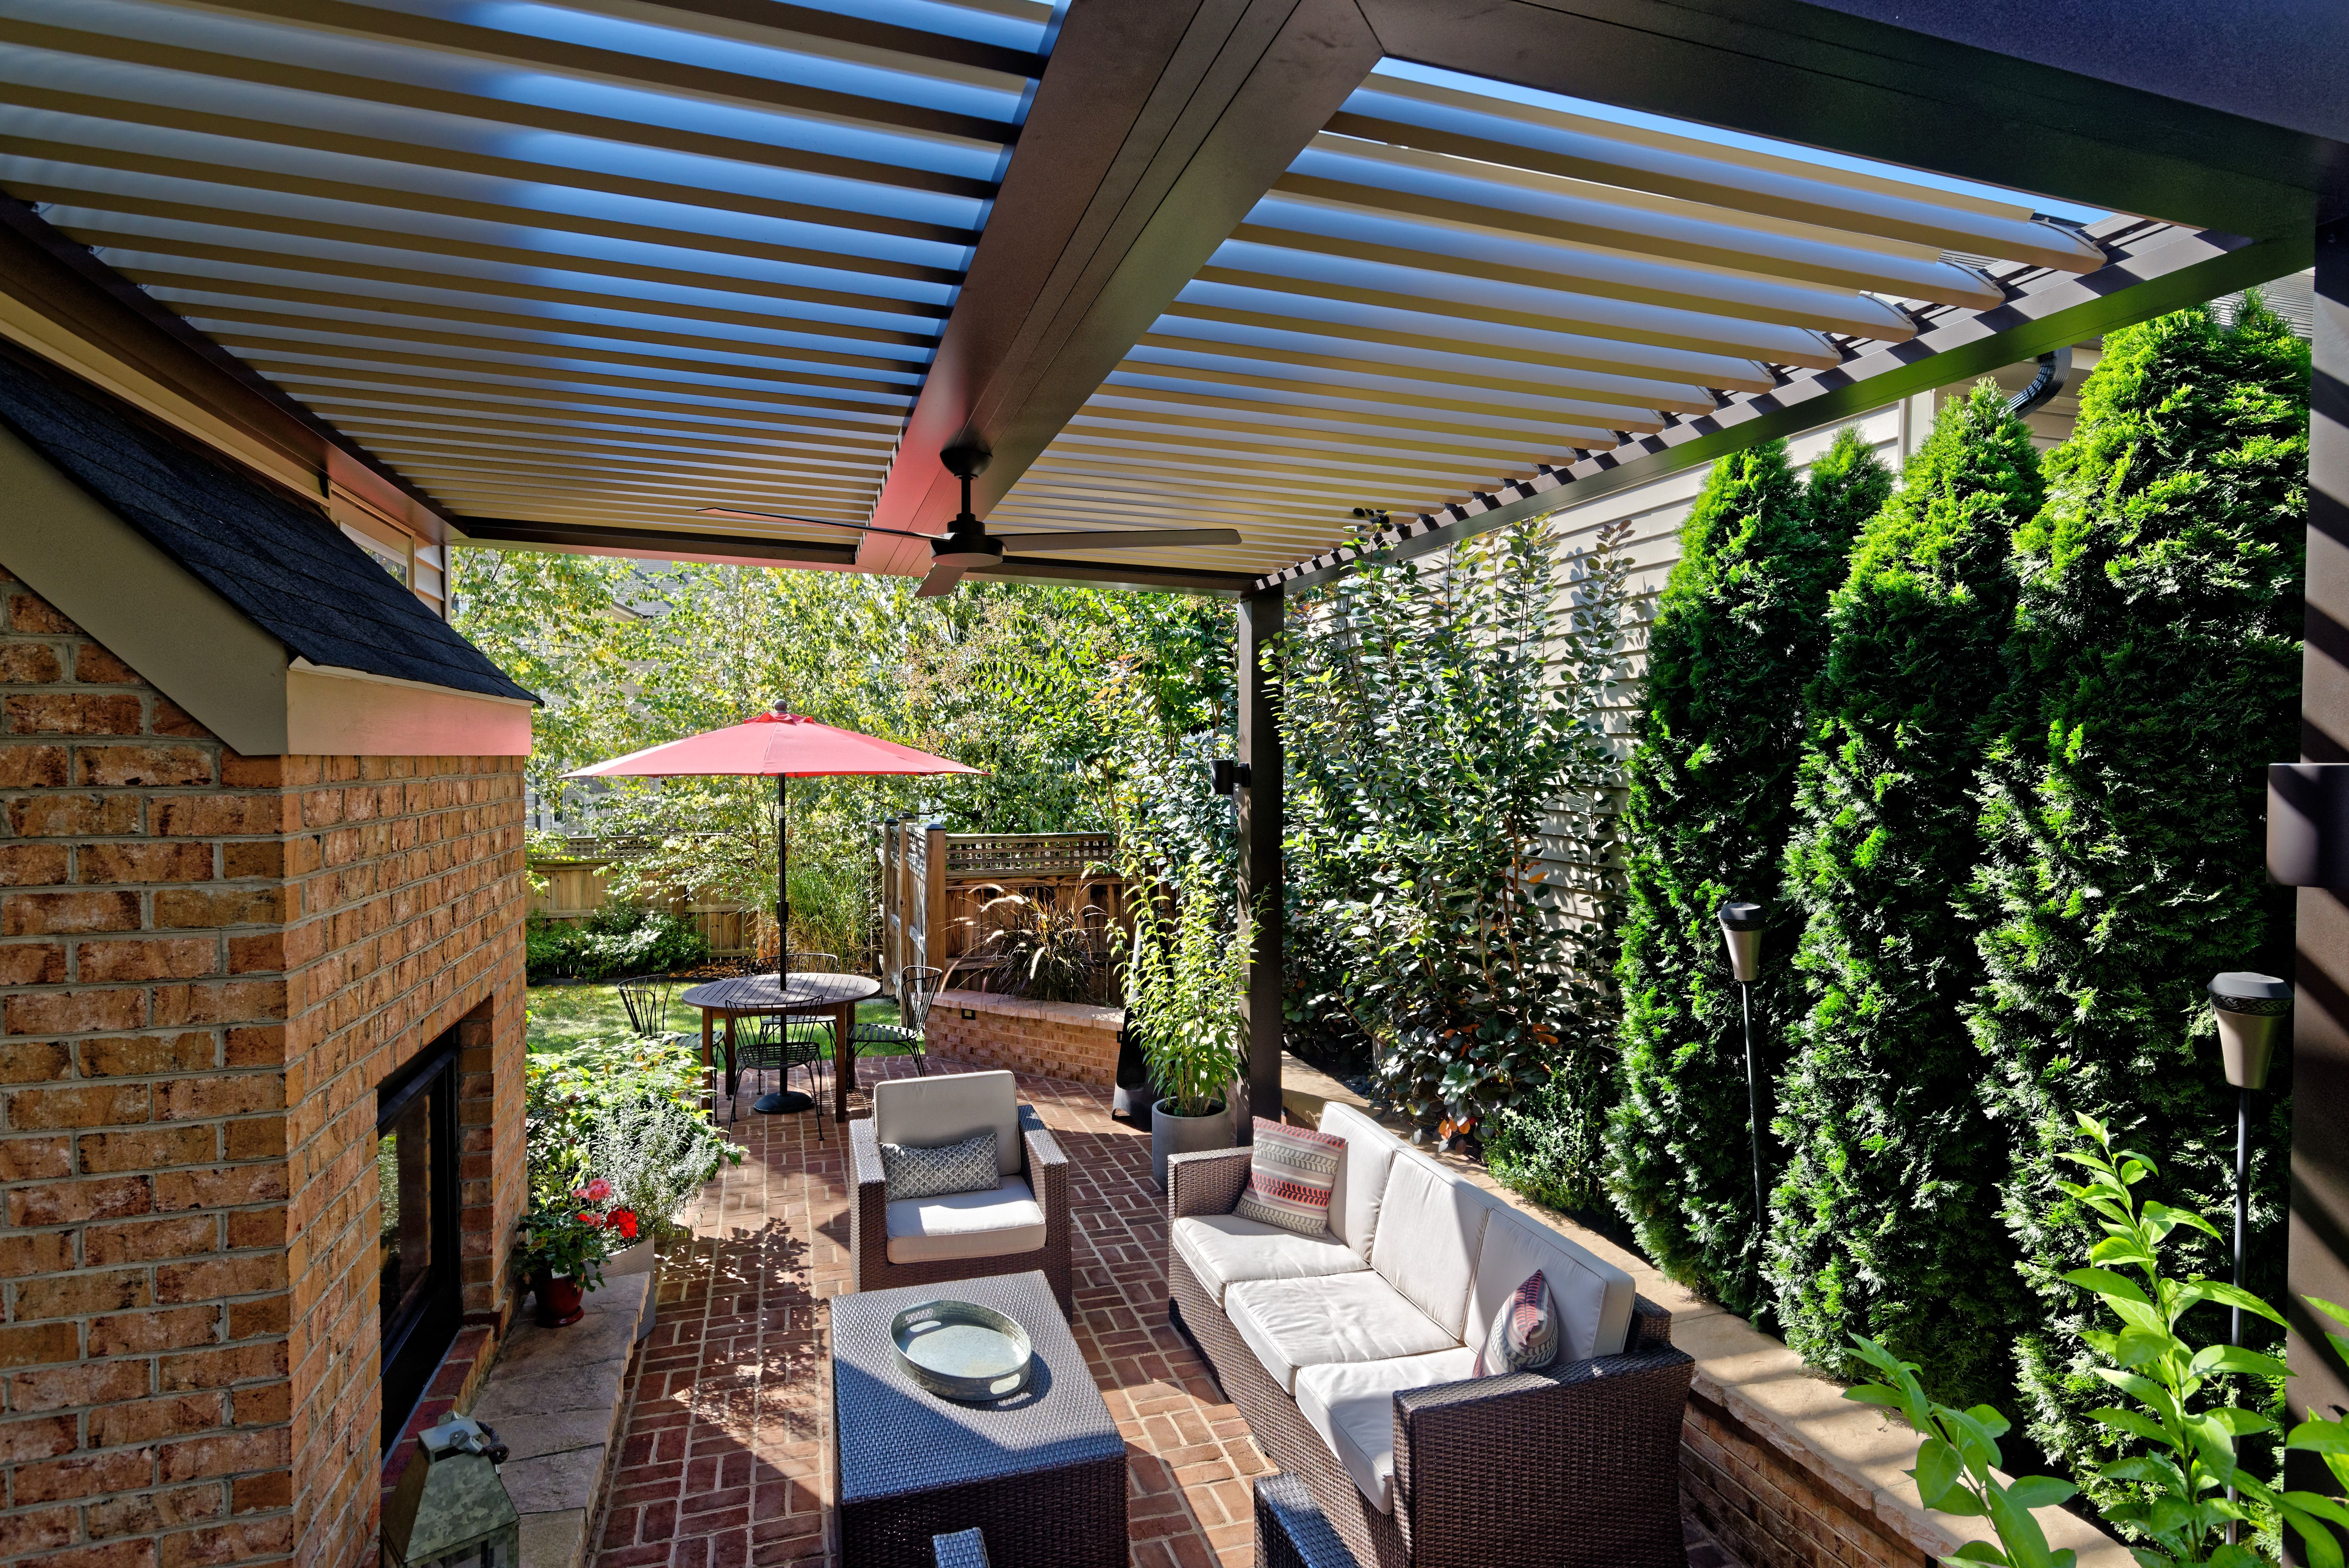 This patio provides the best of outdoor living with an Equinox ... on blue roof, motorized roof, patio roof, pergola sun shade roof, outdoor kitchen with metal roof, eclipse opening roof, solar shingles roof, icf roof,